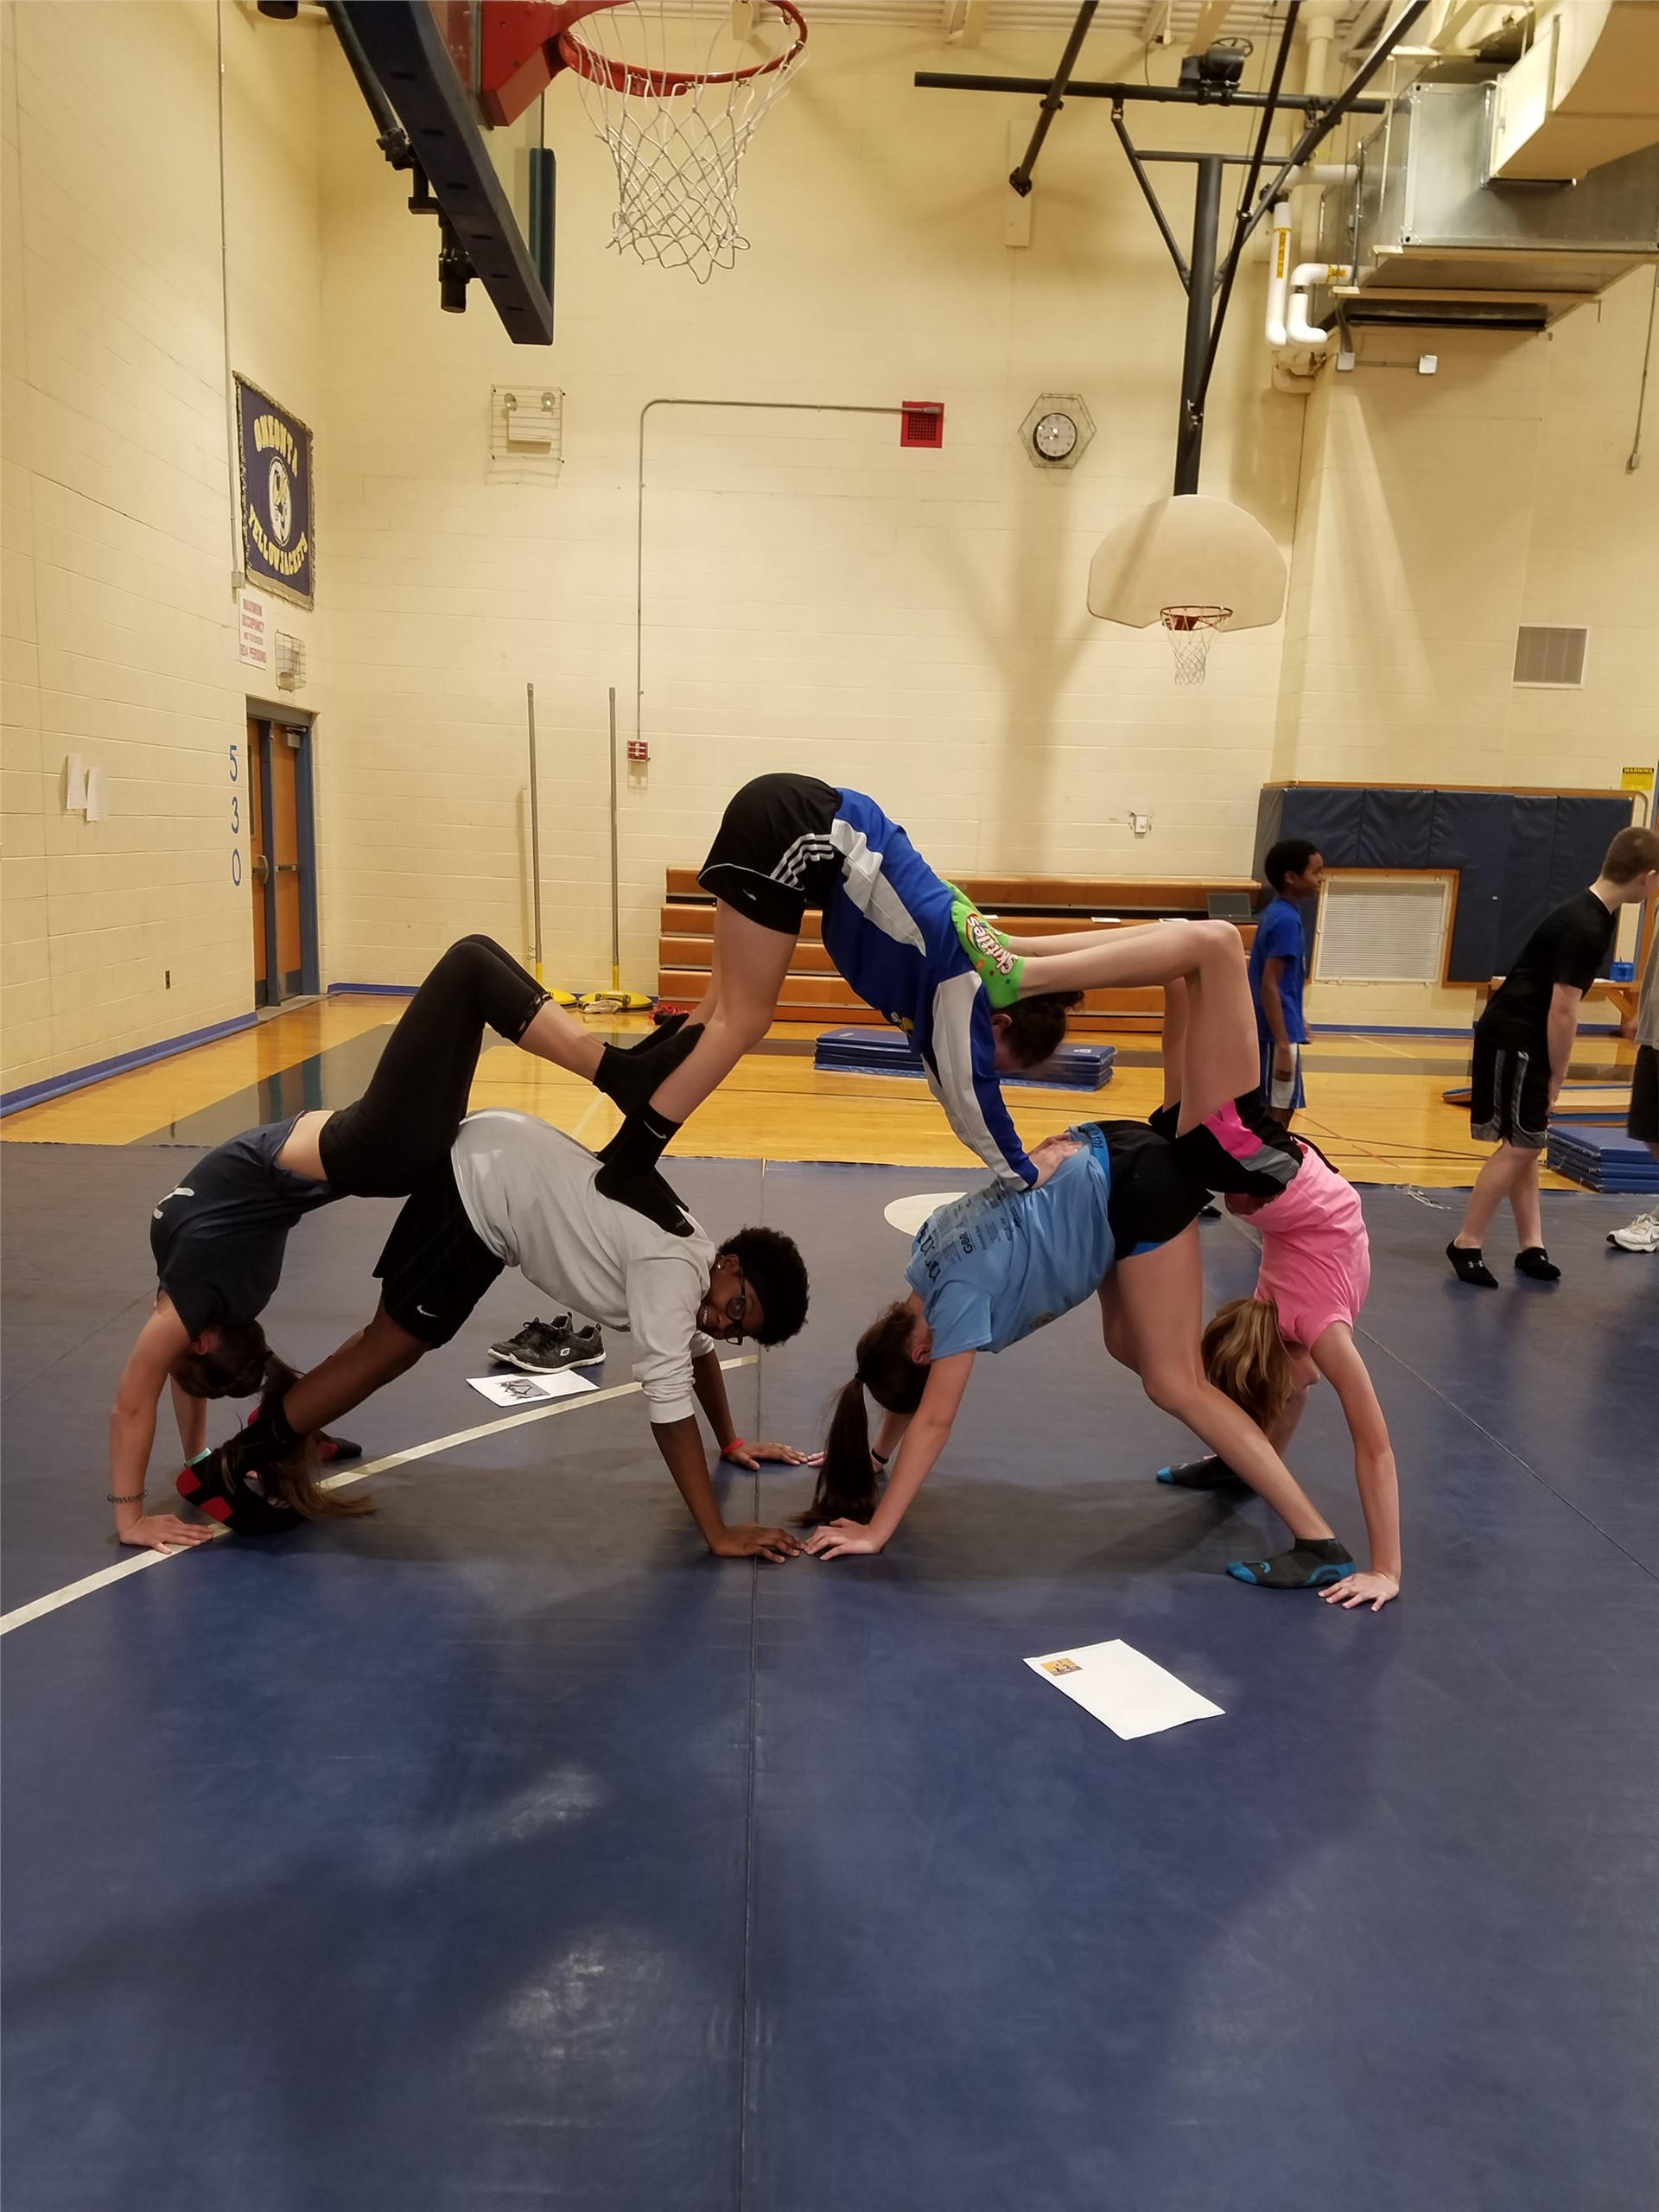 Students doing gymnastics during PE class